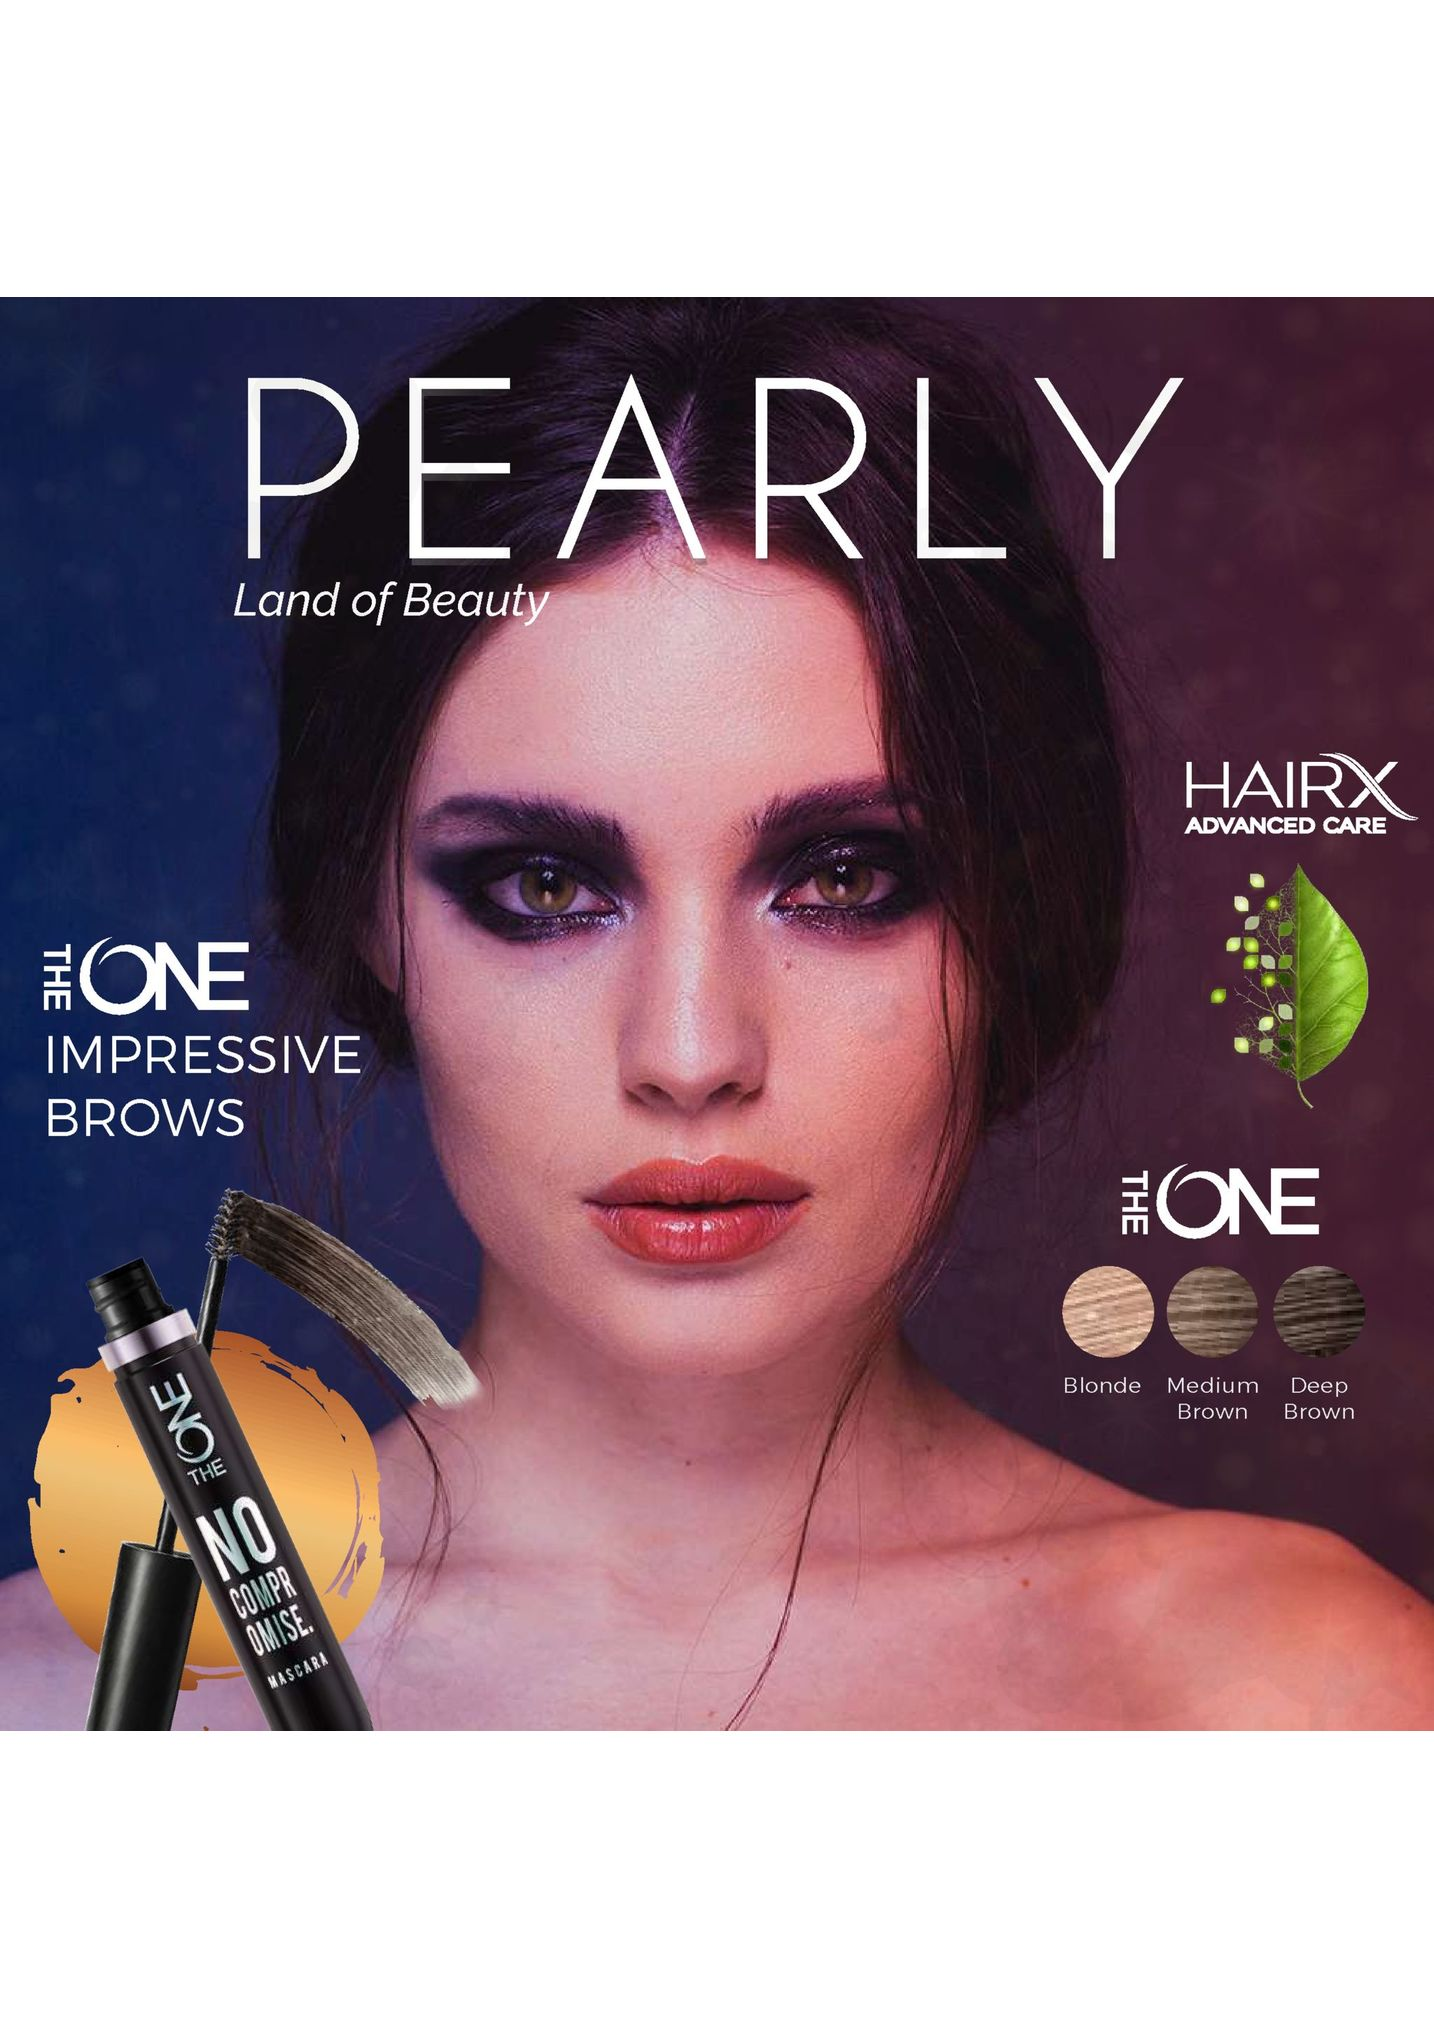 pearly land of beauty hairx advanced care one impressive brows hone blonde medium deep brown brown